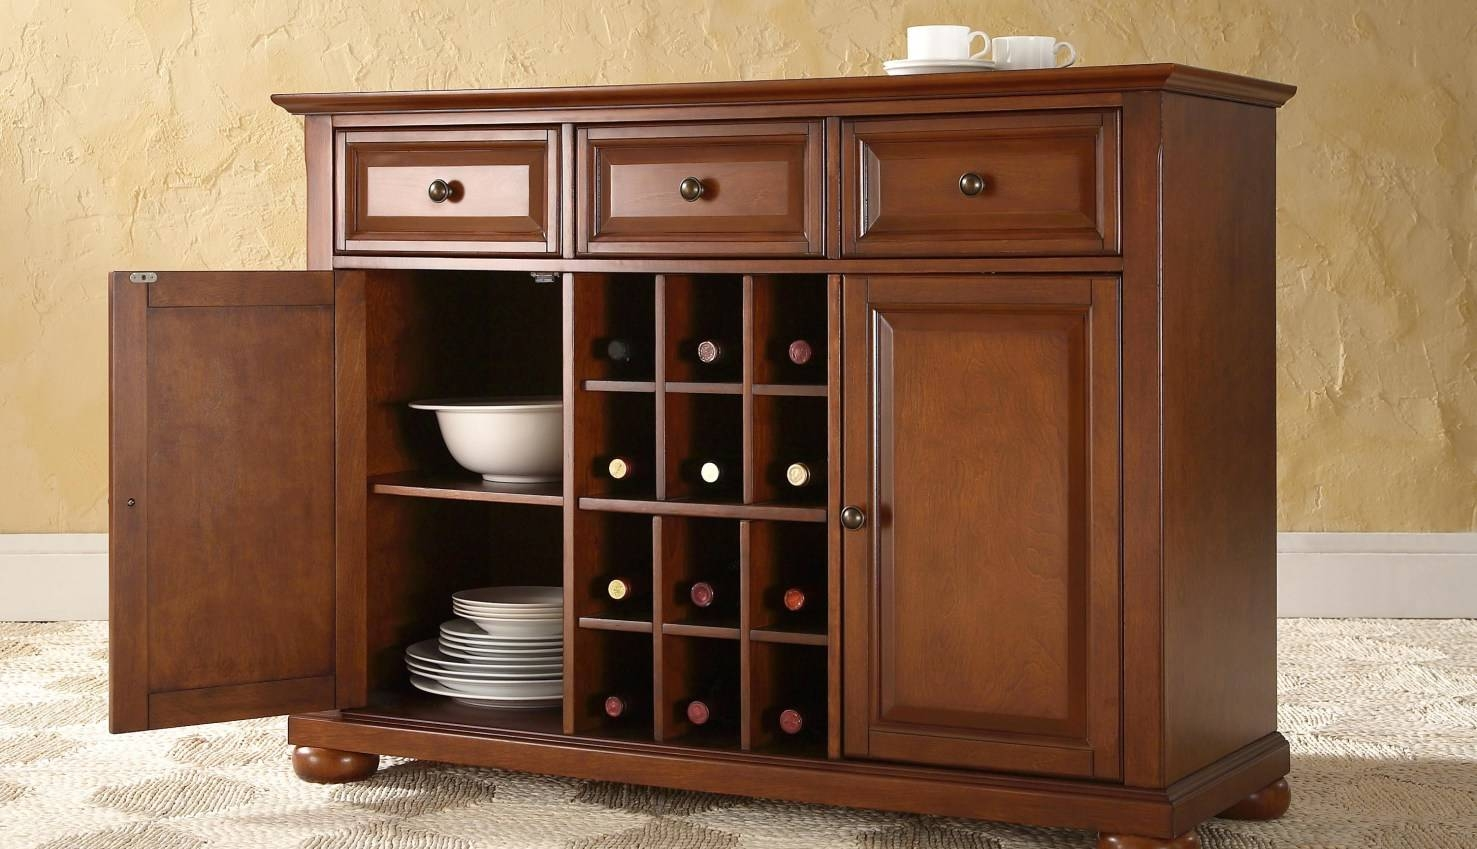 Sideboard : Buffet Or Sideboard New For Sideboards Amazing Buffet for Buffets And Sideboards (Image 11 of 15)